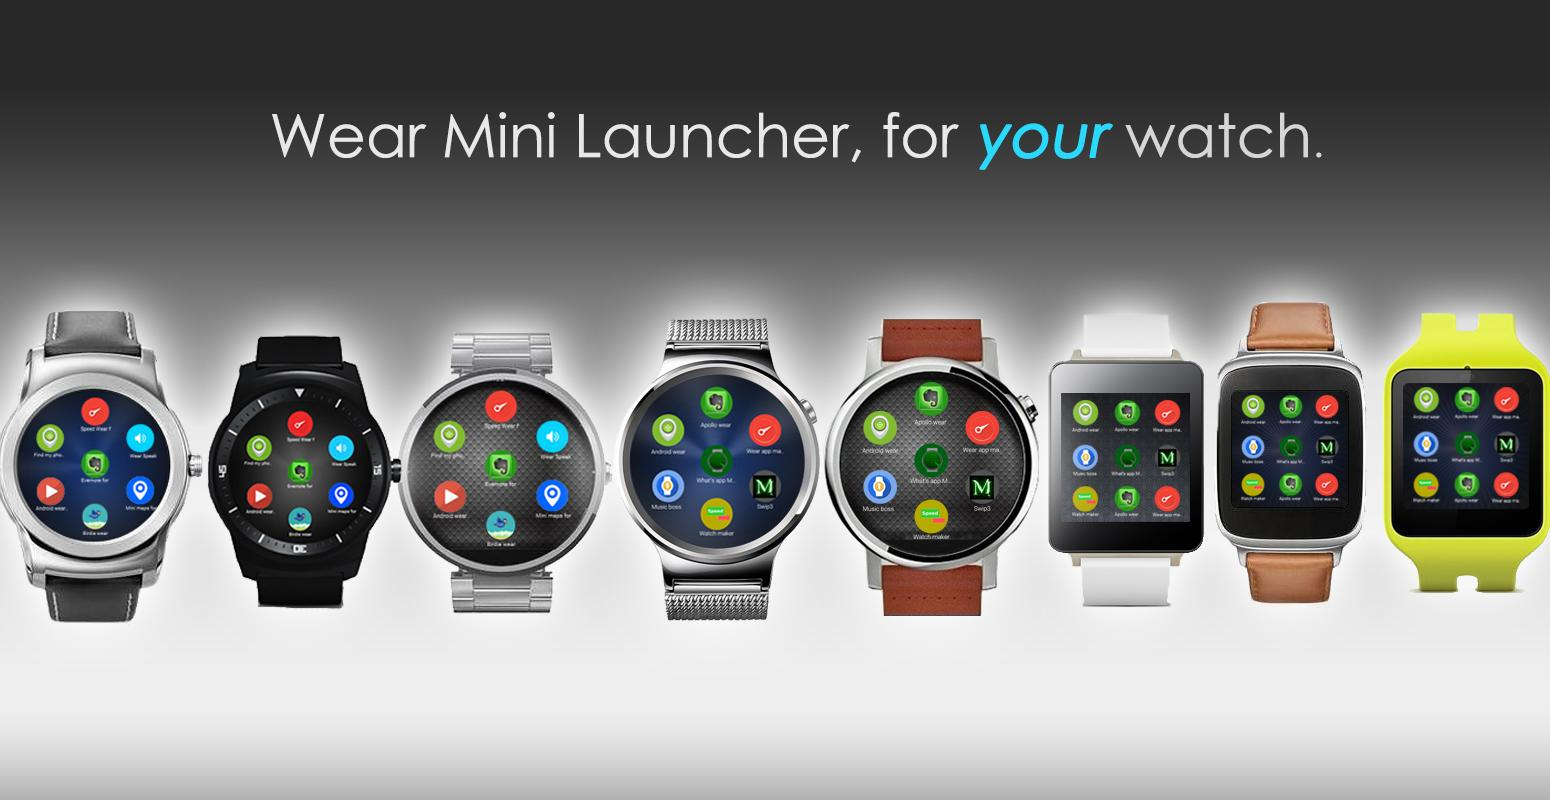 Wear Mini Launcher 584 Apk Download Android Communication Apps Circuit Board Clock V 10 For G Watch Facerepo Screenshot 1